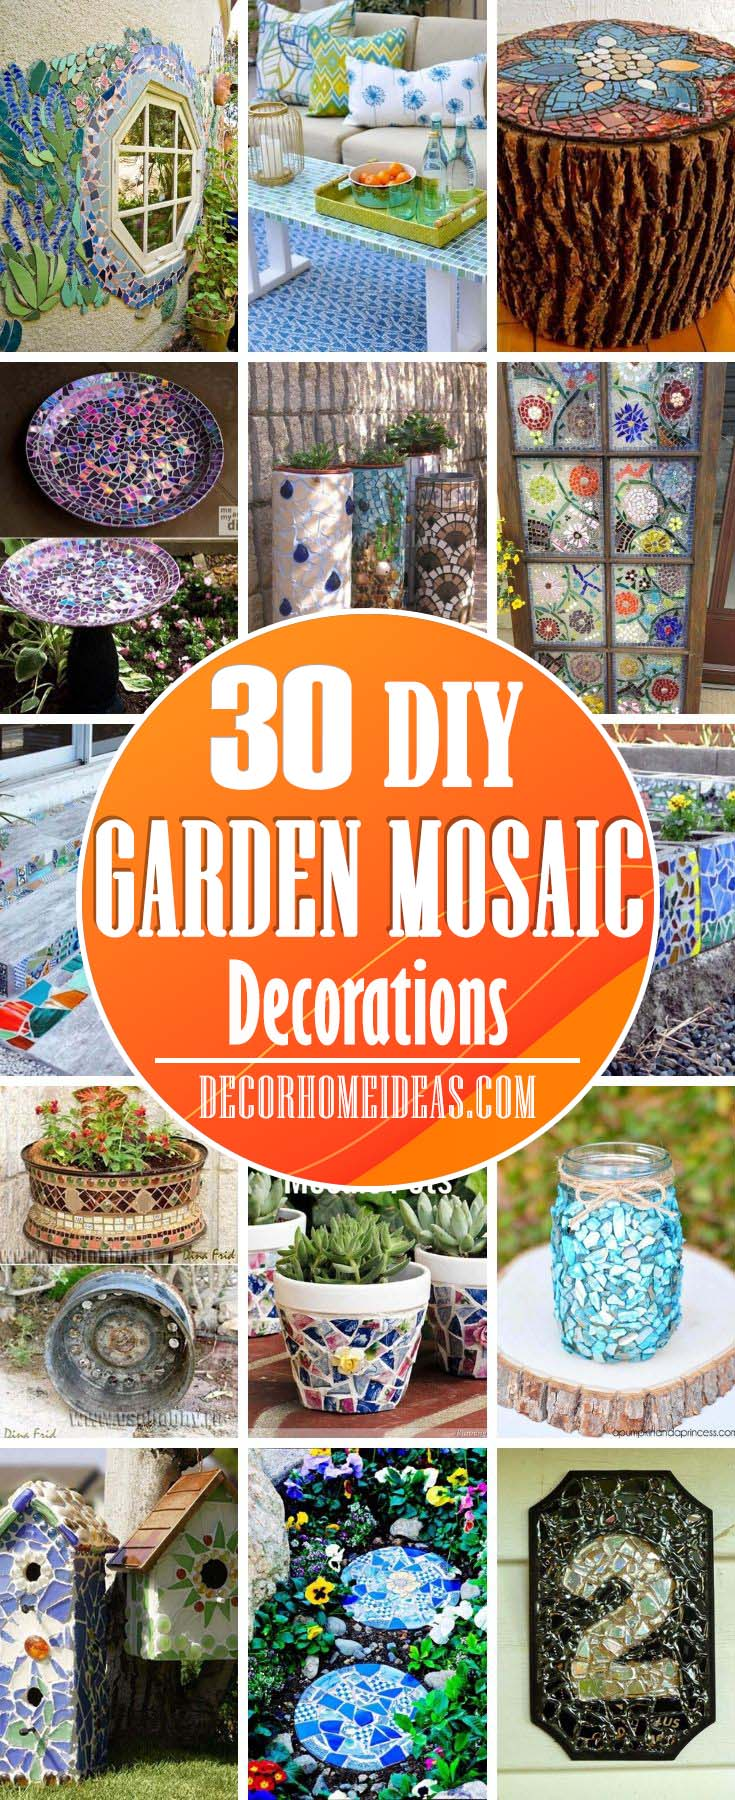 Best DIY Garden Mosaic Decoration Ideas. Mosaics are a unique way to bring color and style to your garden or backyard. You can DIY these mosaic ideas and brighten up your outdoor space. #diy #garden #mosaic #decorations #decorhomeideas